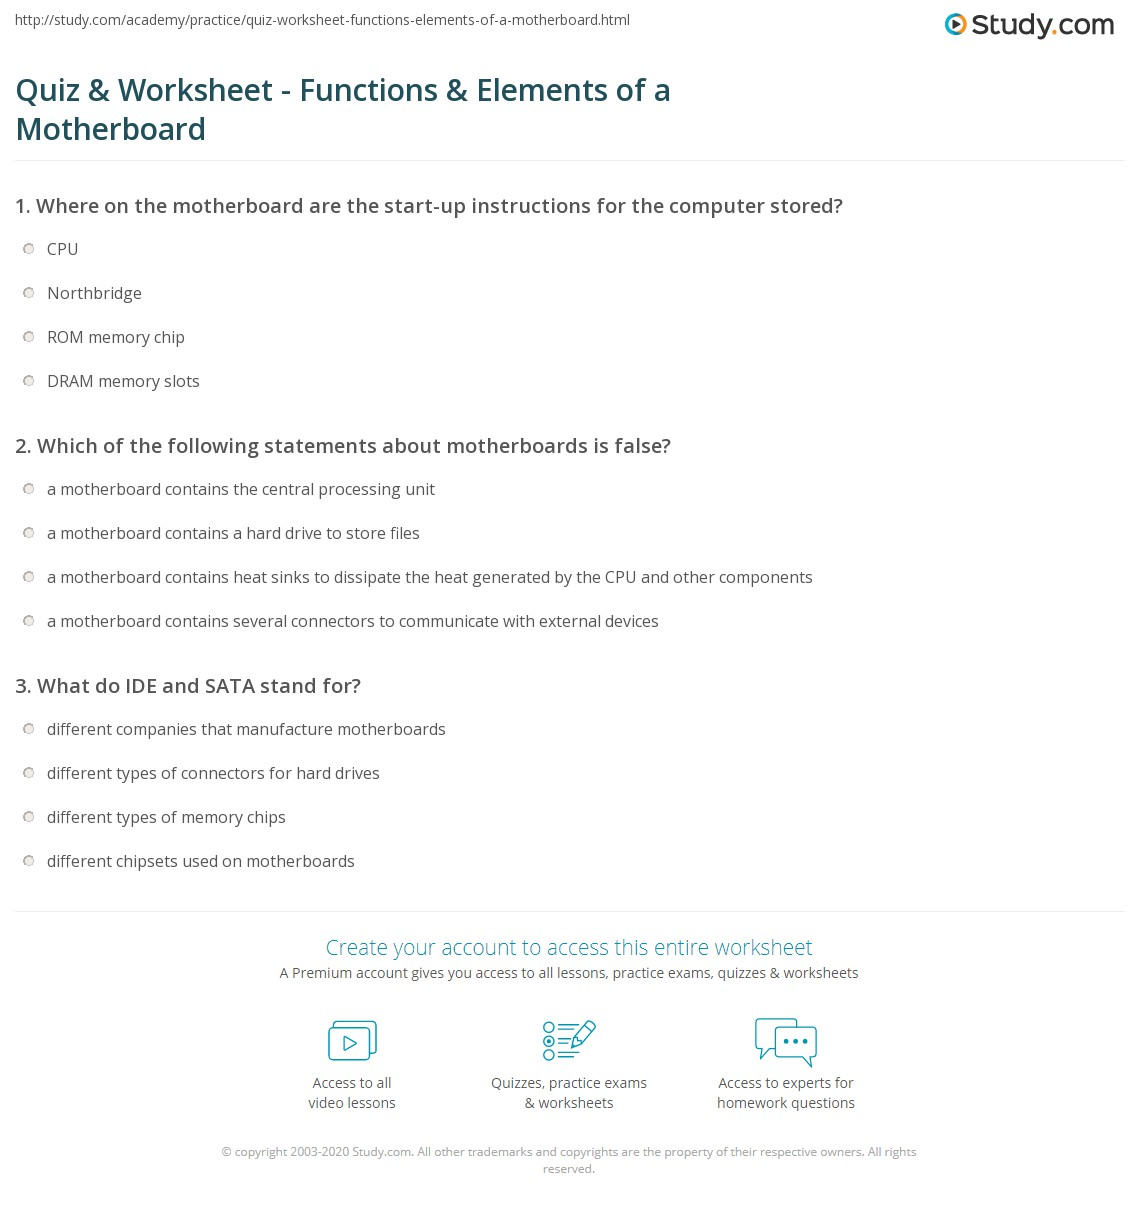 Quiz Worksheet Functions Elements Of A Motherboard Study